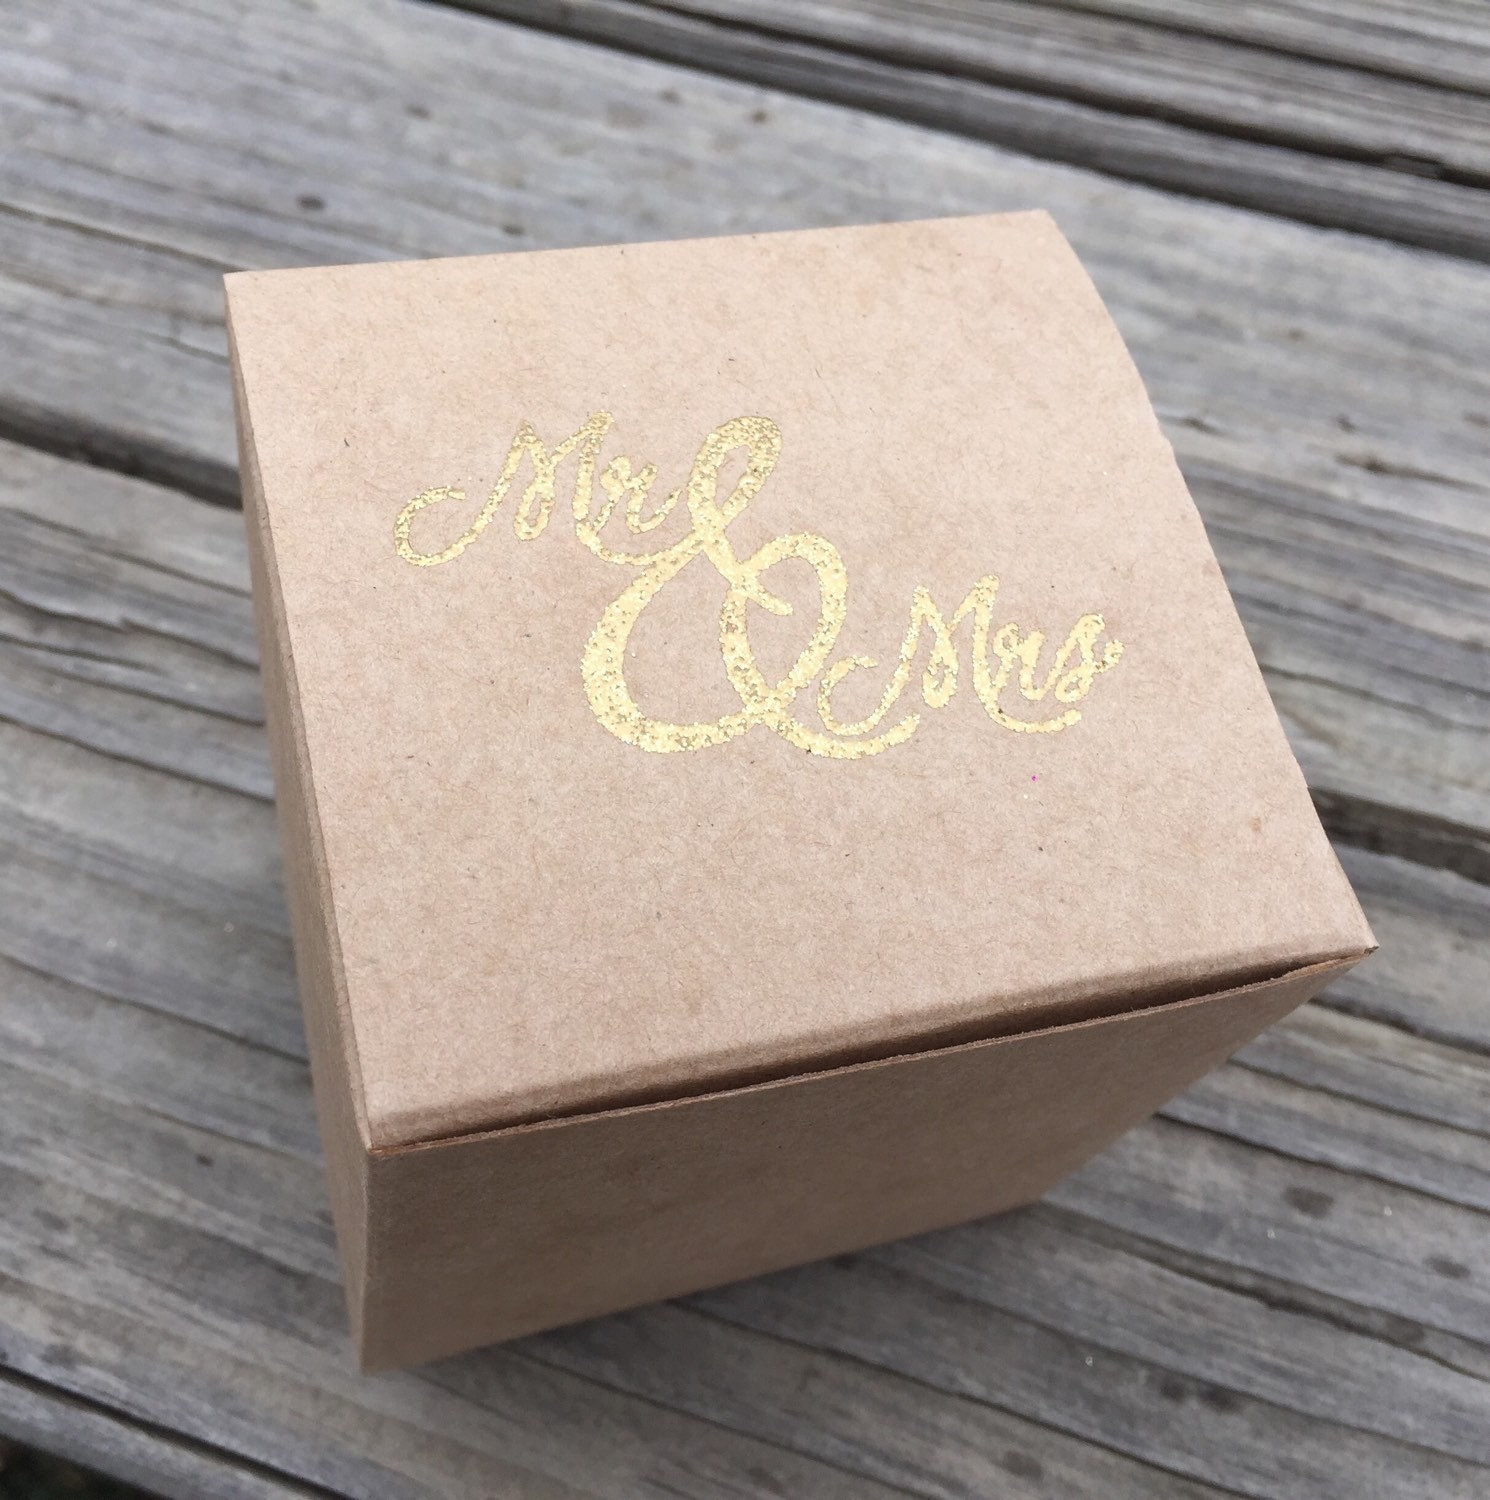 10 embossed wedding favor boxes cupcake boxes treat boxes. Black Bedroom Furniture Sets. Home Design Ideas